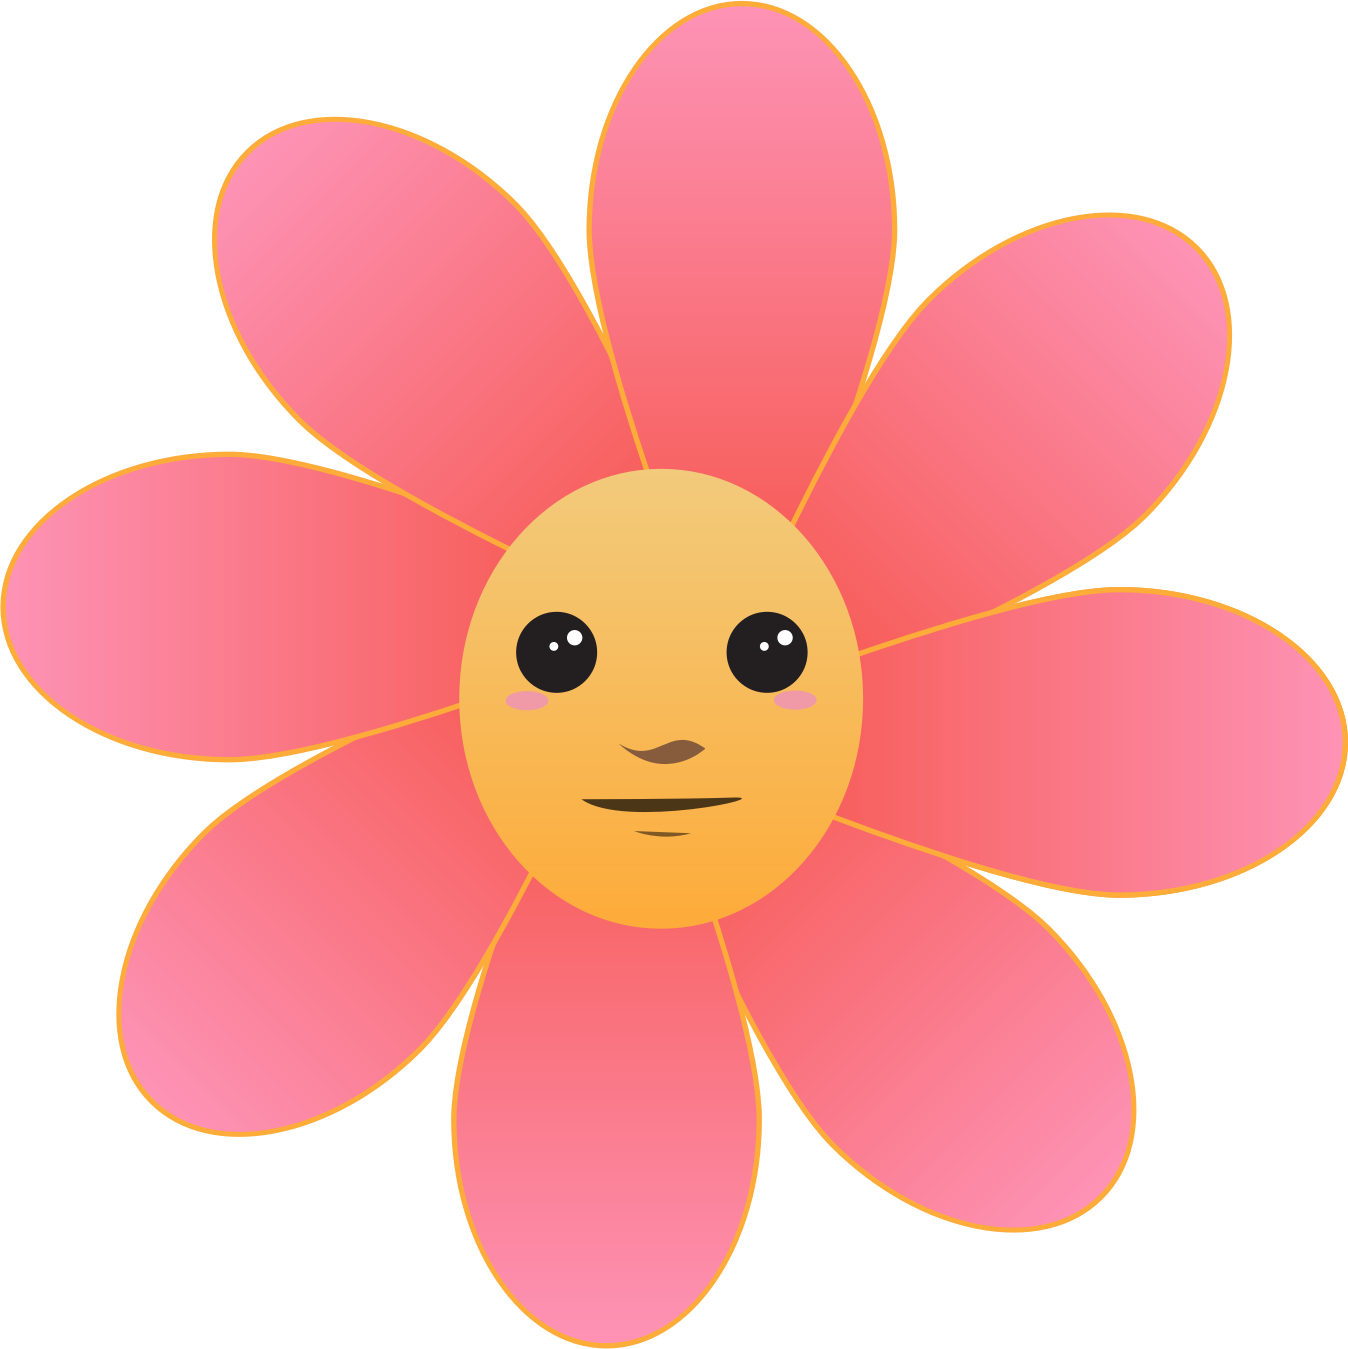 Flower face by intergrapher